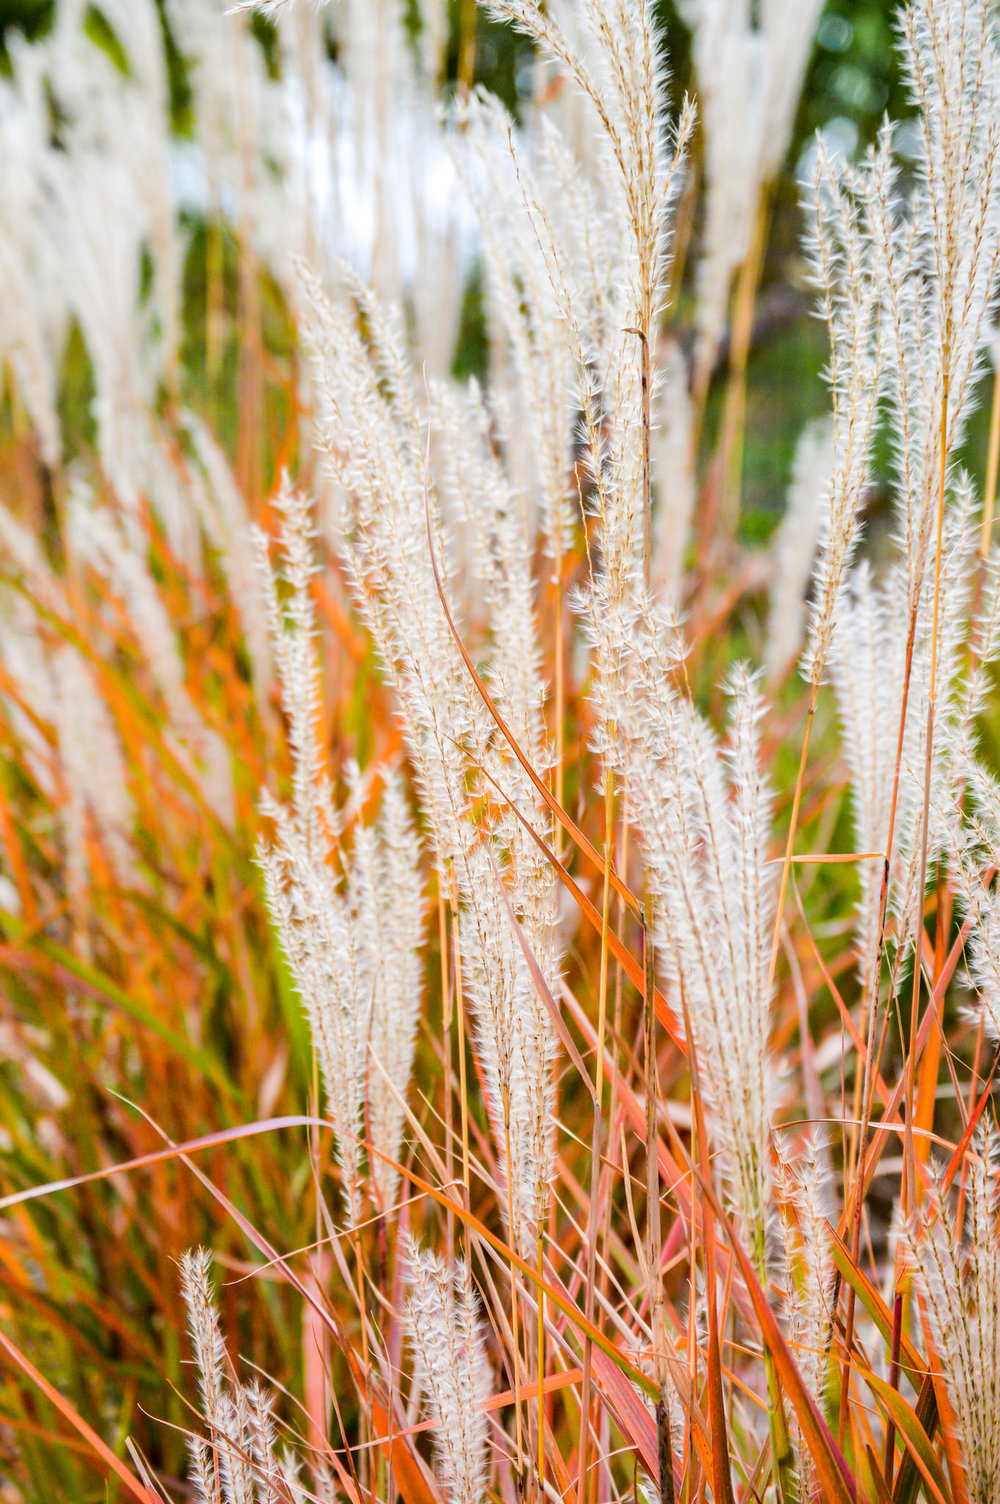 Just a picture of some ornamental grass, but the colors and composition are wonderful. Great job!